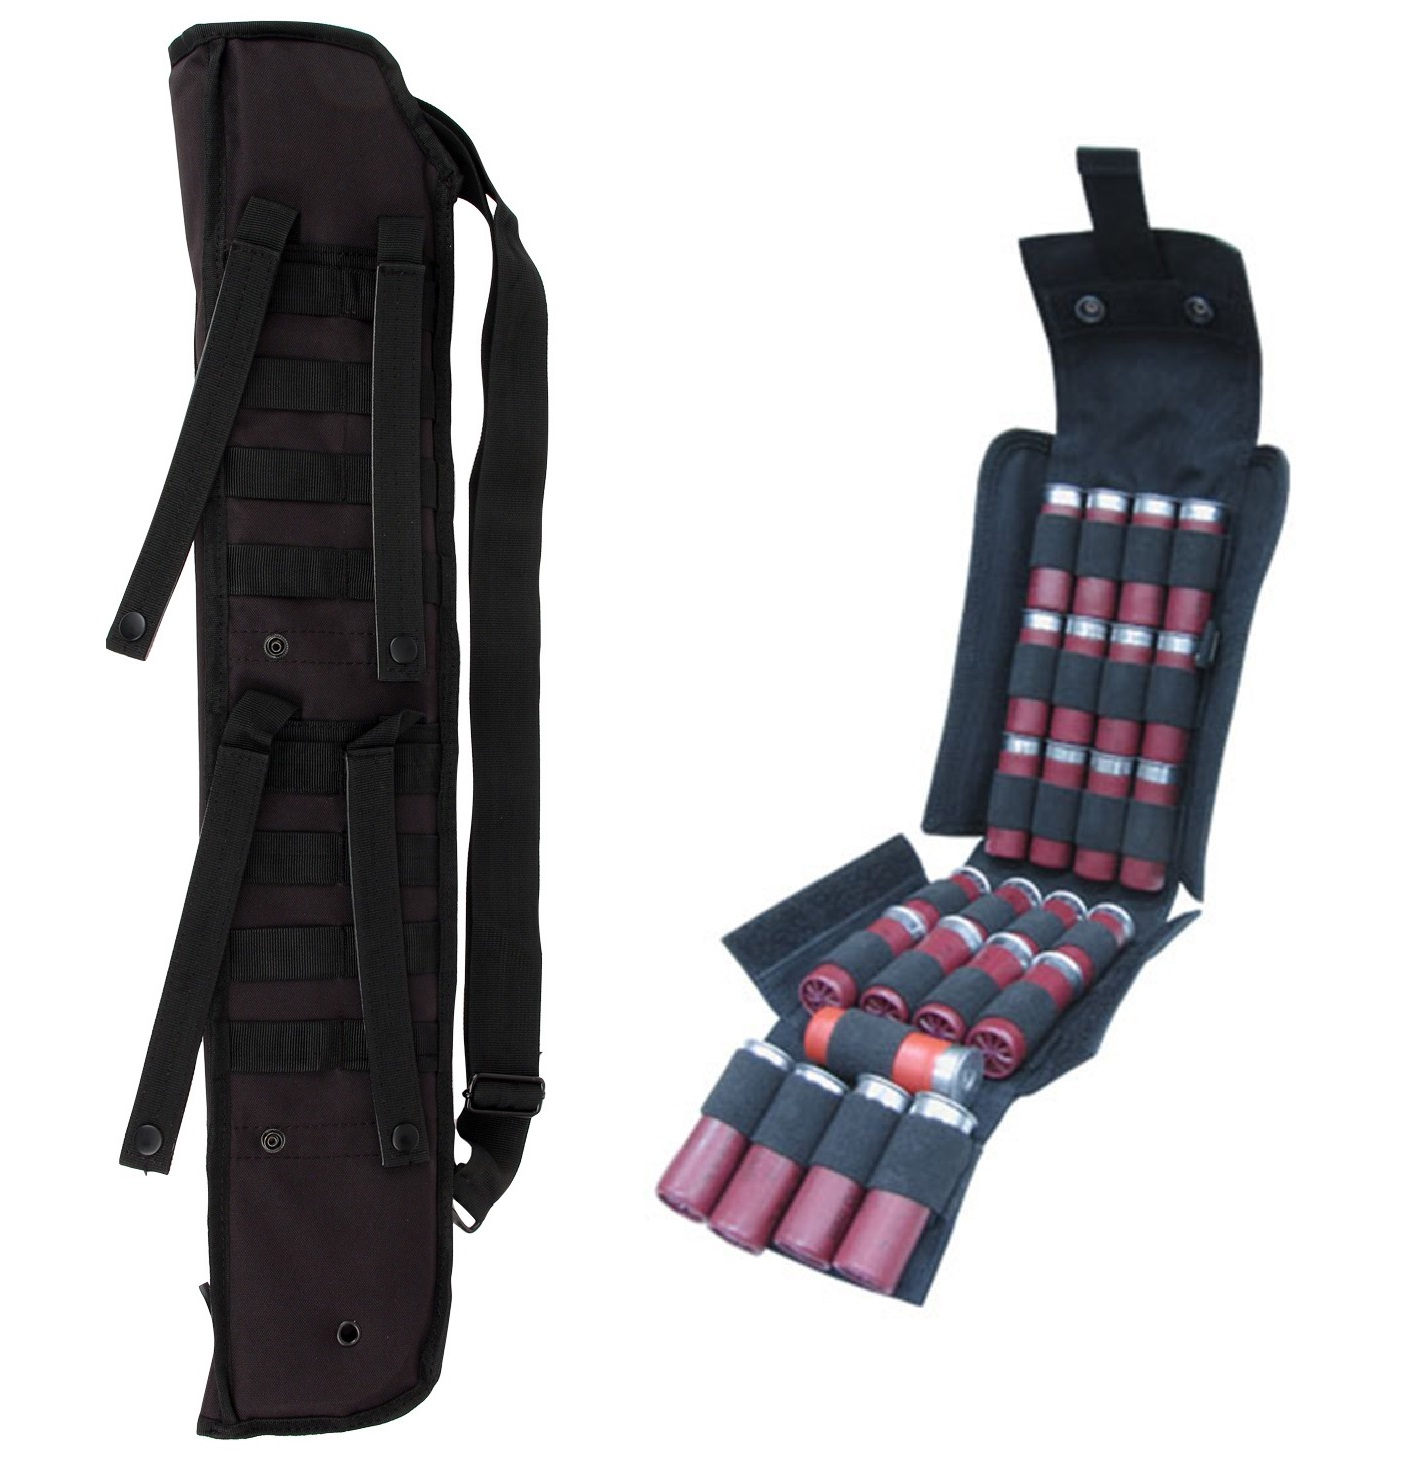 "Ultimate Arms Gear Tactical 29"" Black Molle Scabbard For Remington 870/11-87/1187 12 Gauge Shotgun + Tactical Black Molle 25 Shot Shell Ammunition Ammo Reload Carrier Pouch 12 GA Shotgun Rounds"